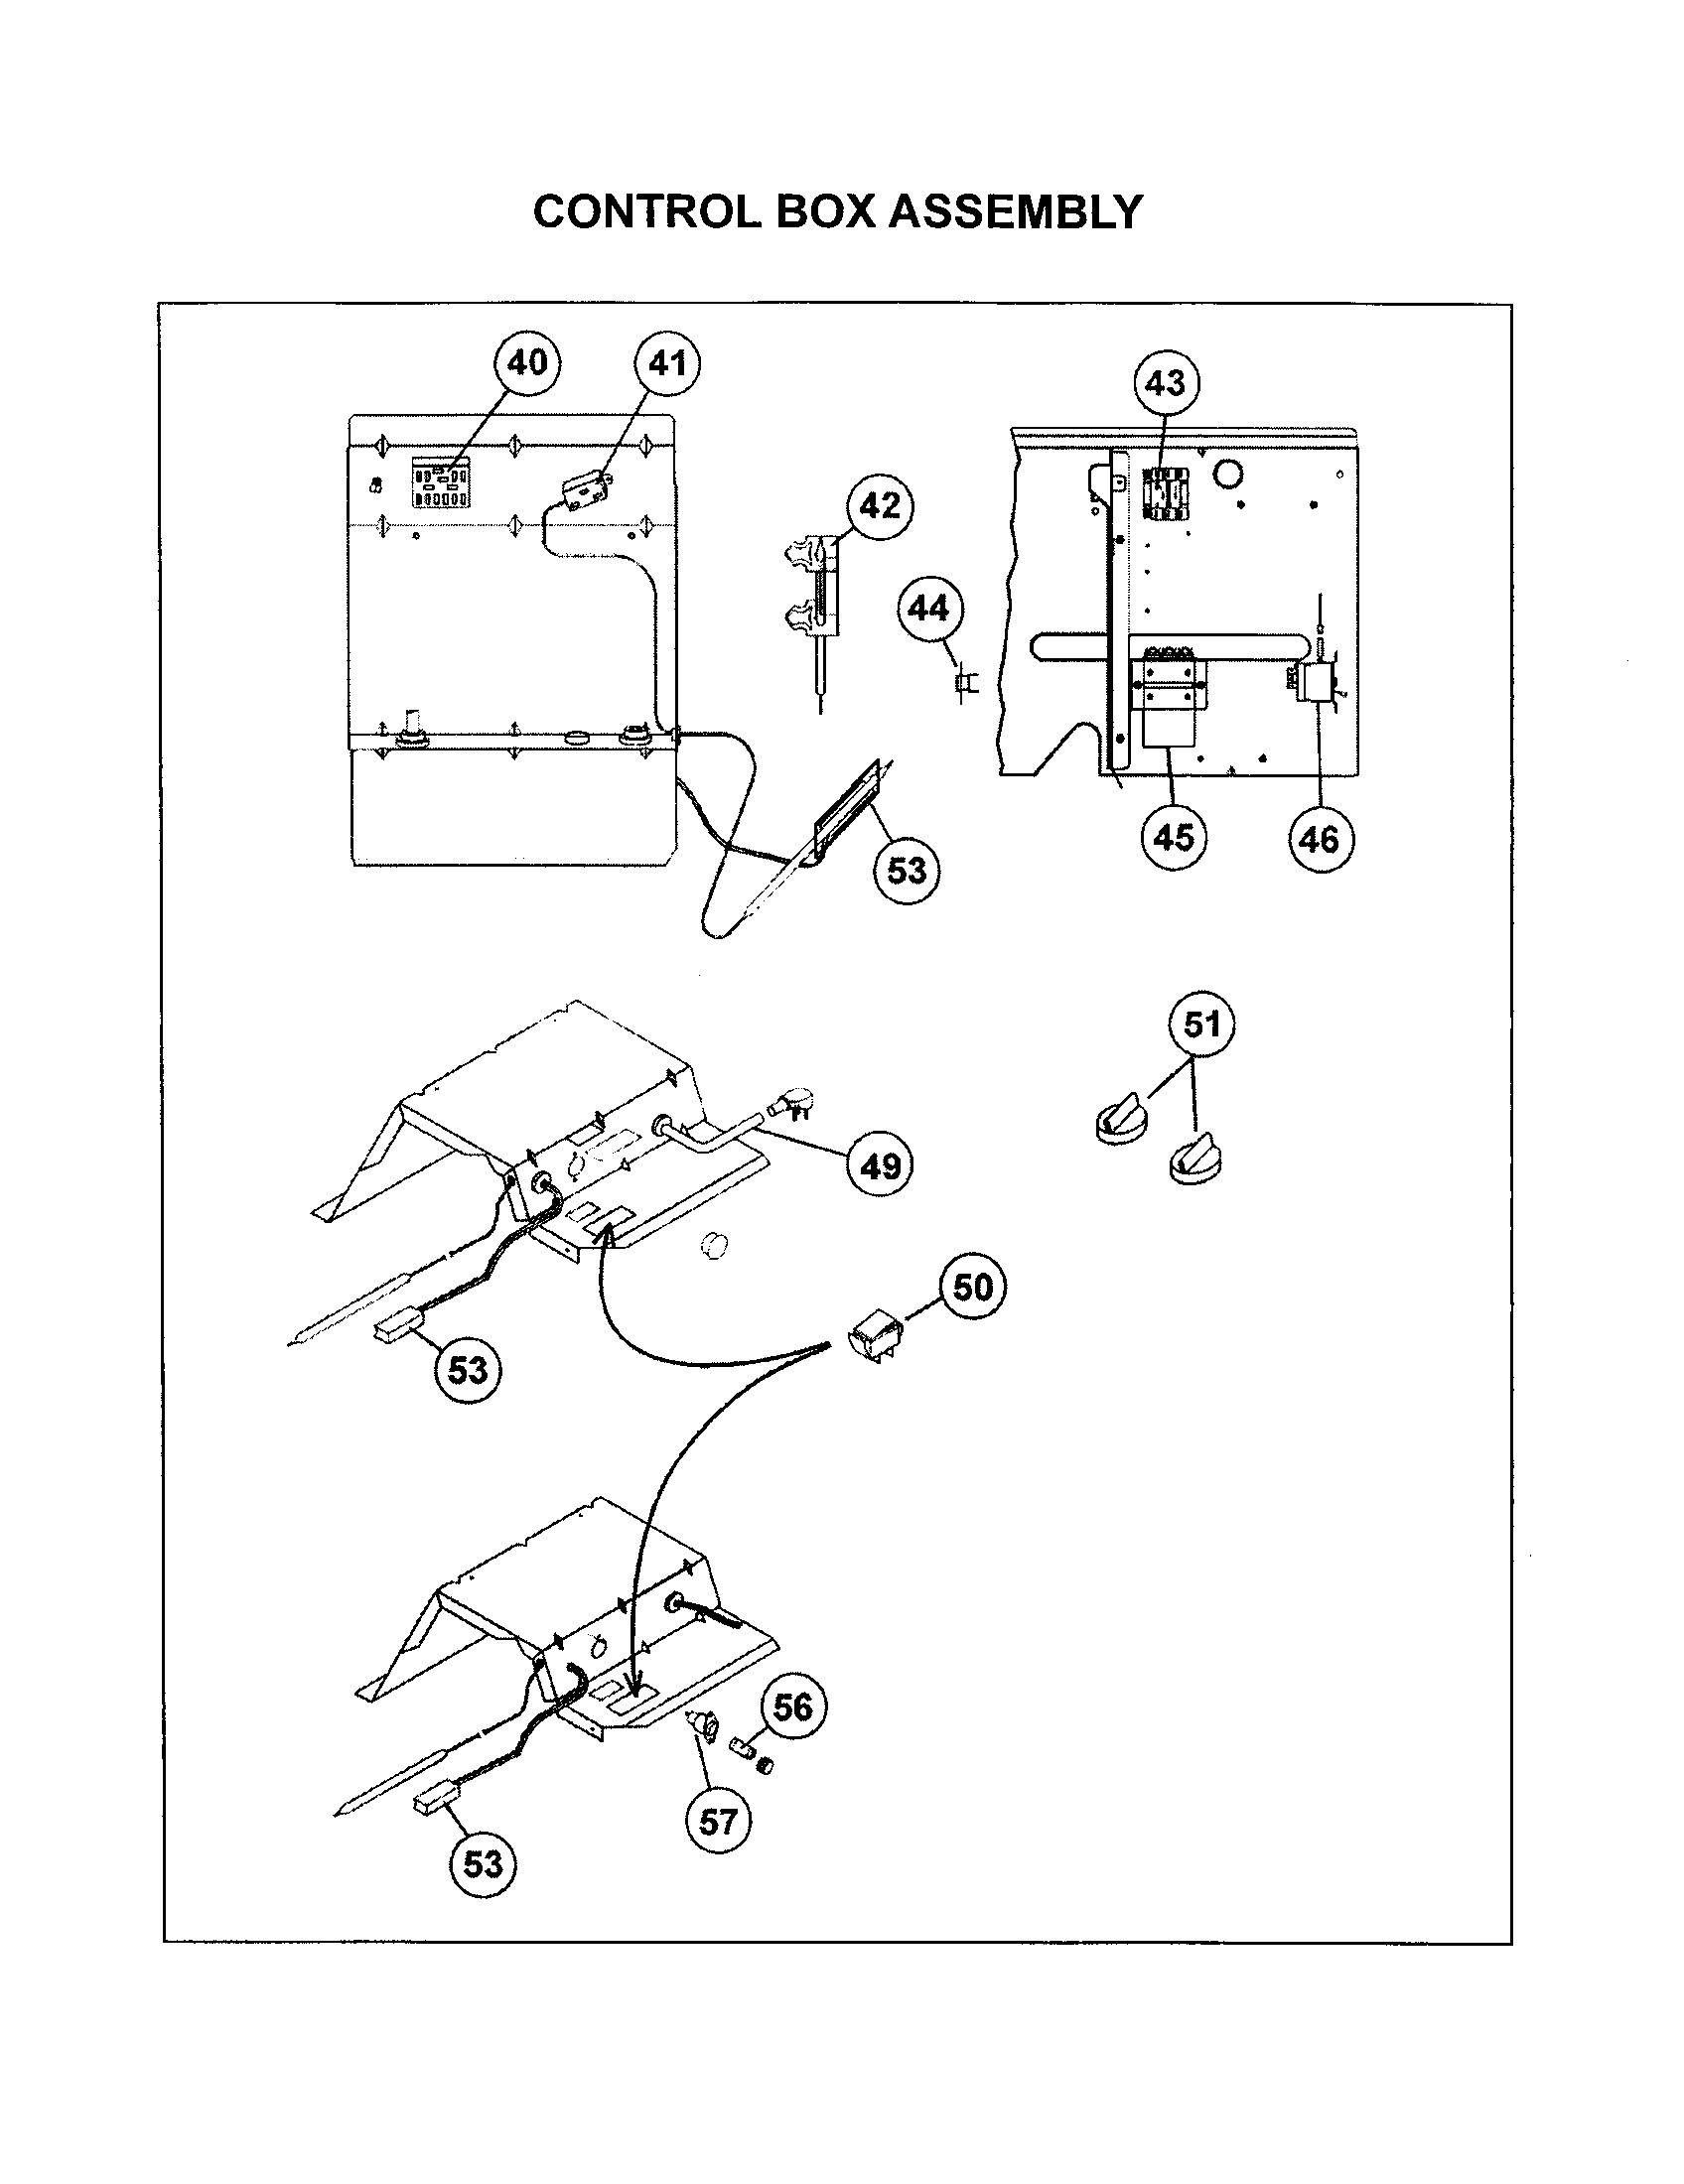 CONTROL BOX ASSEMBLY Diagram & Parts List for Model